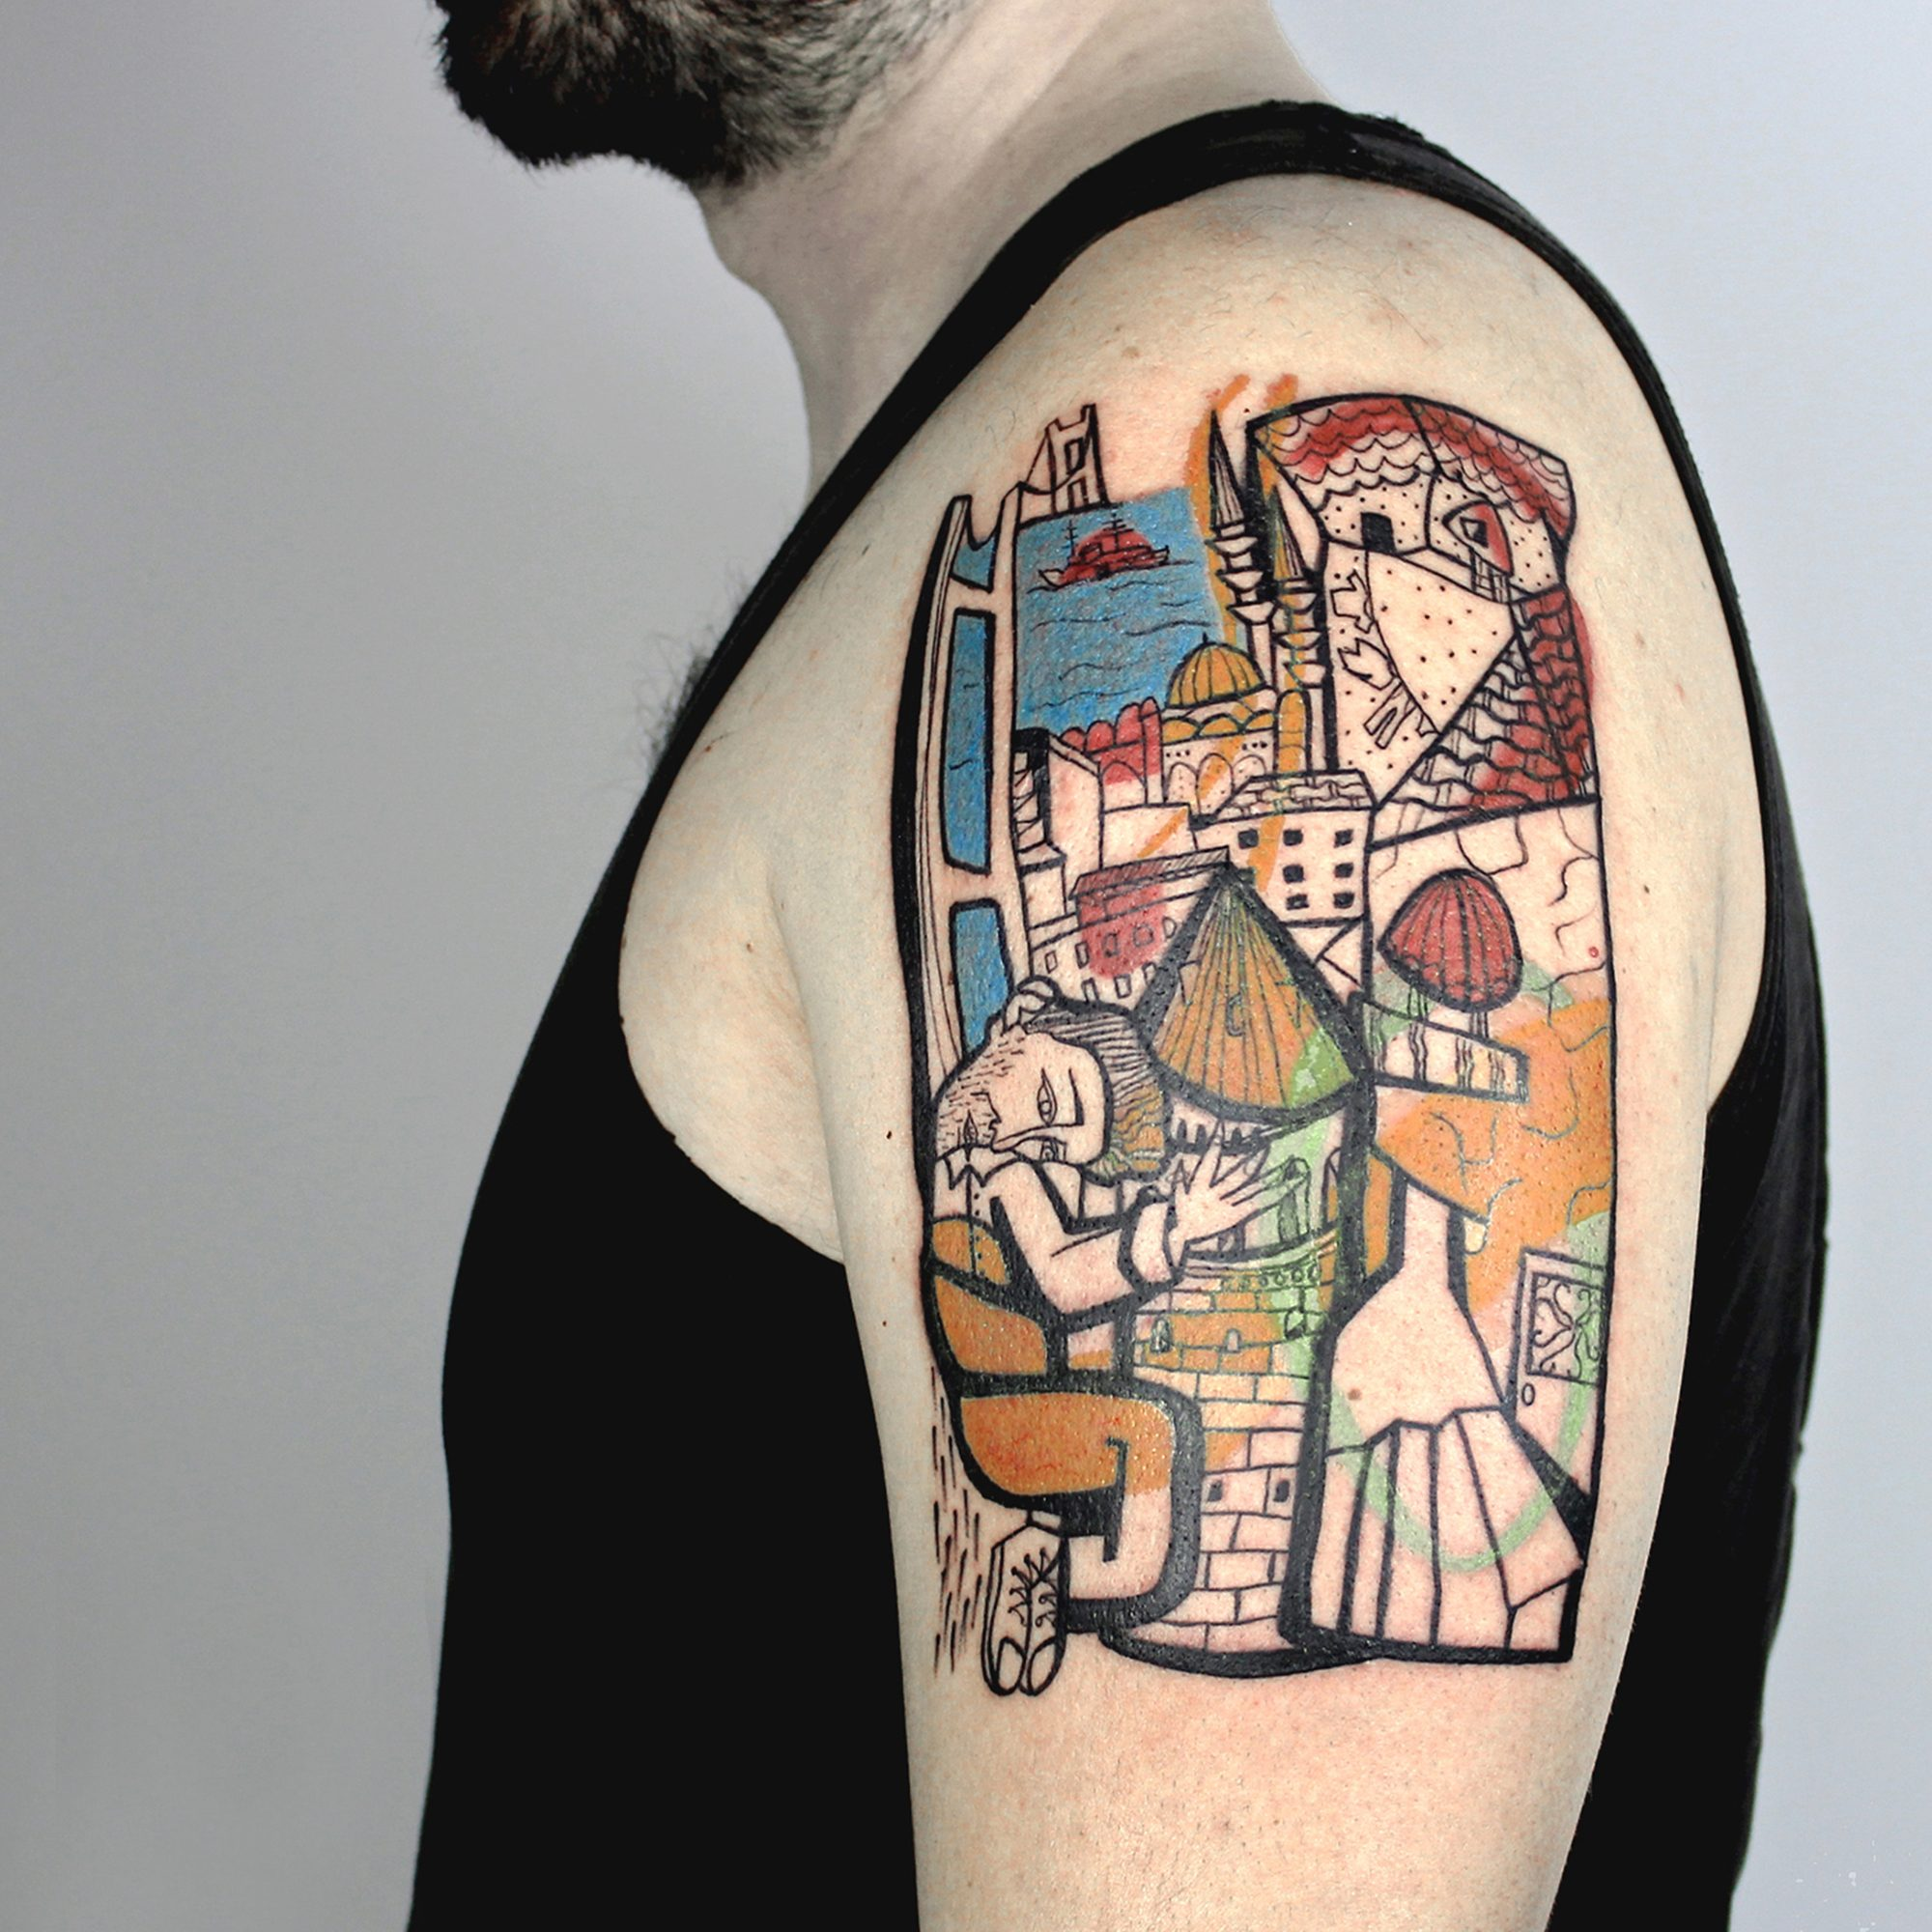 Remakes & Modernism by Mess Tattoos